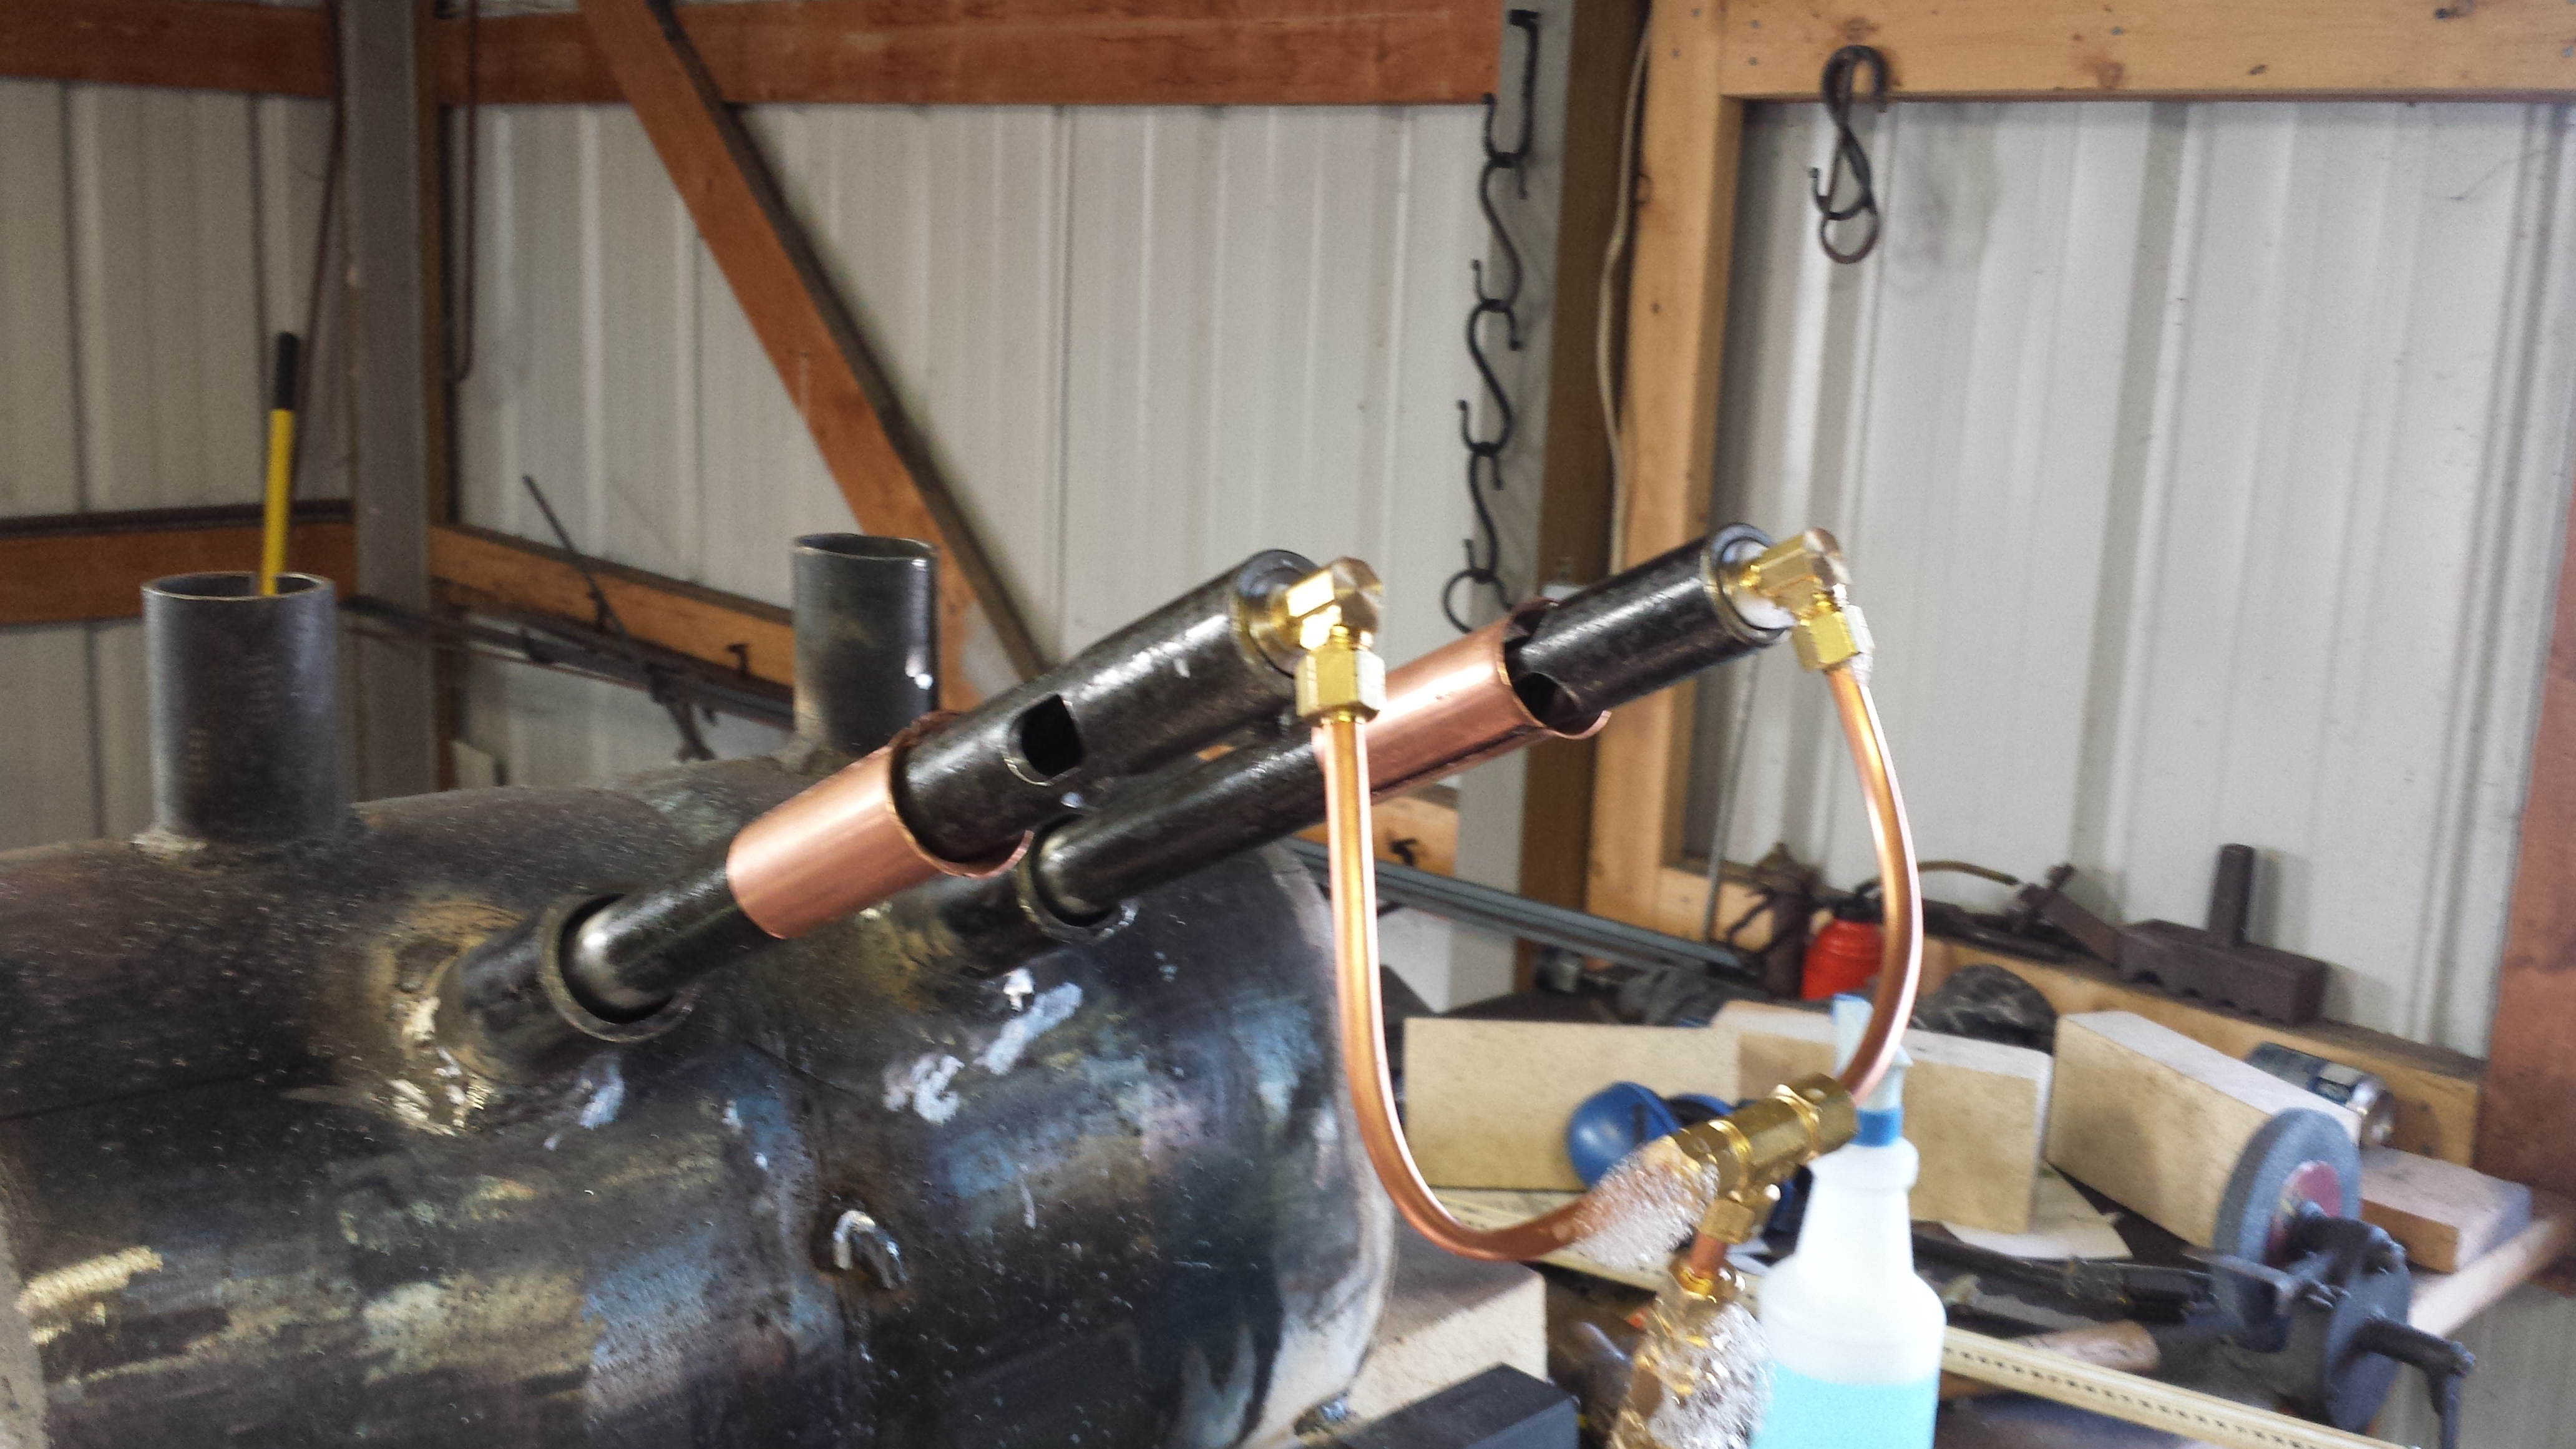 Propane Delivery Plumbing Gas Forges I Forge Iron